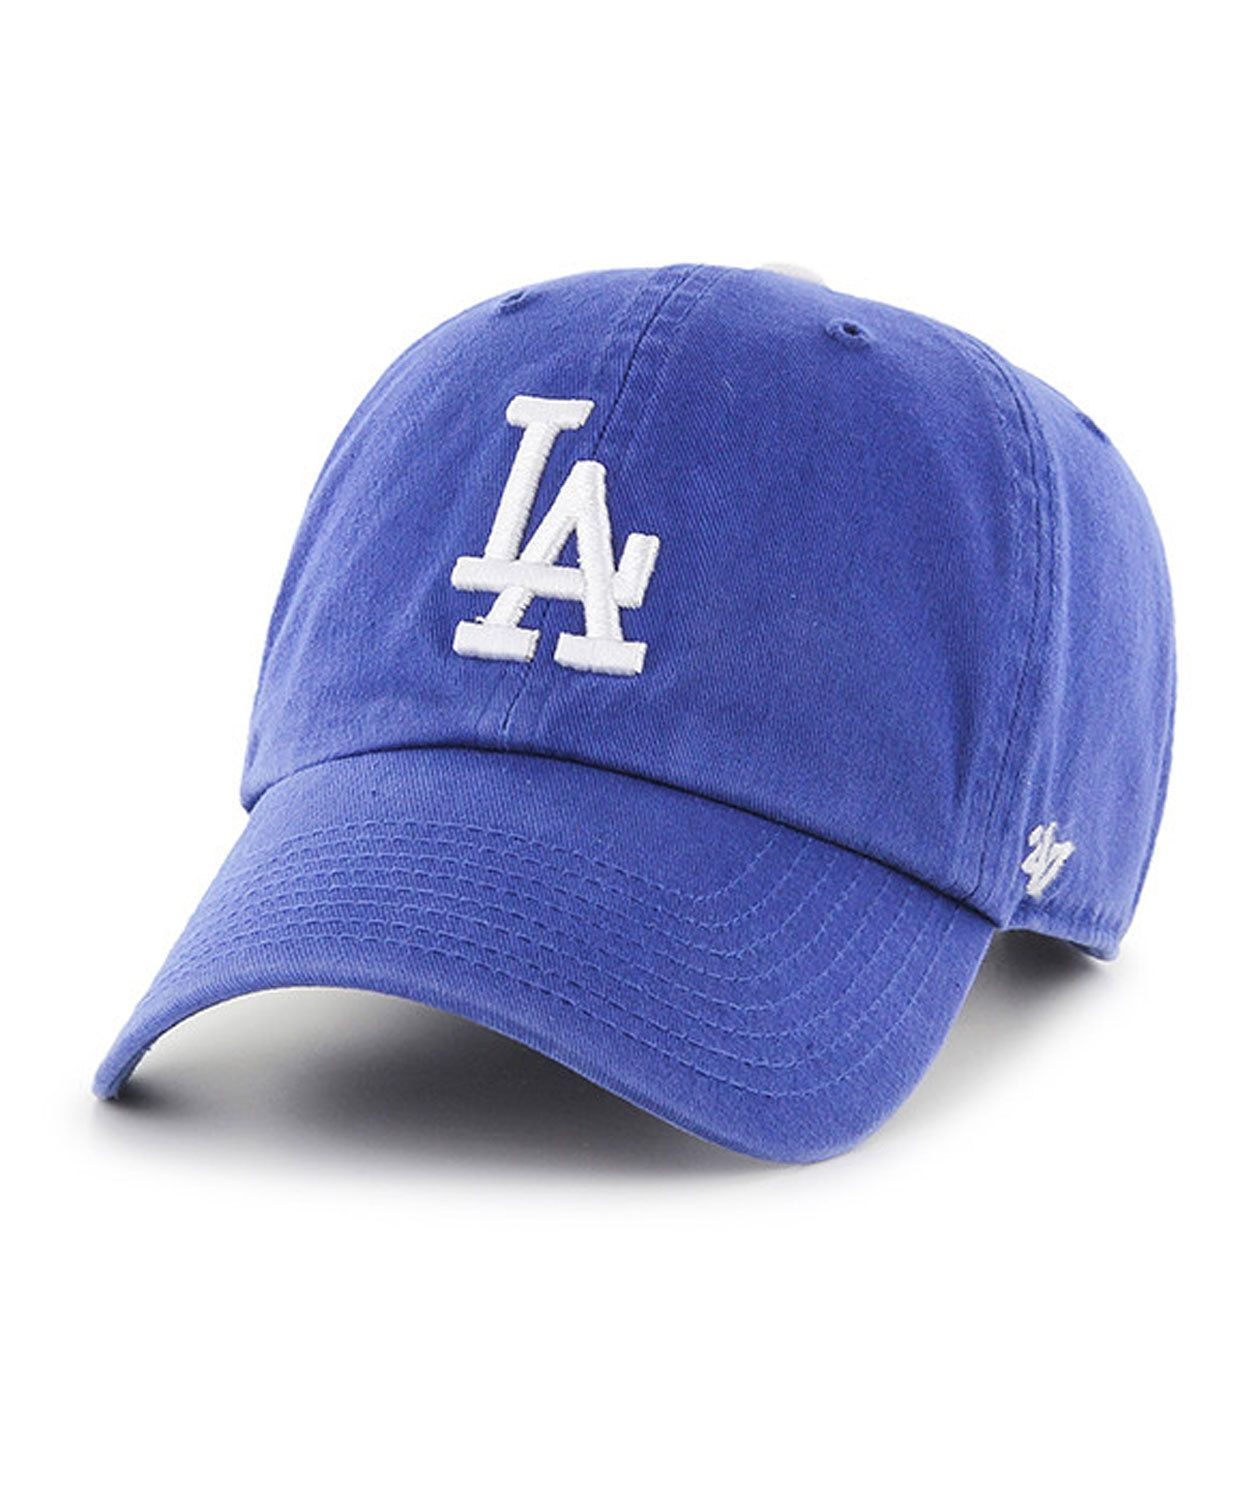 13b50e2a Details about Los Angeles LA Dodgers 47 Brand Womens MLB Neon Clean ...